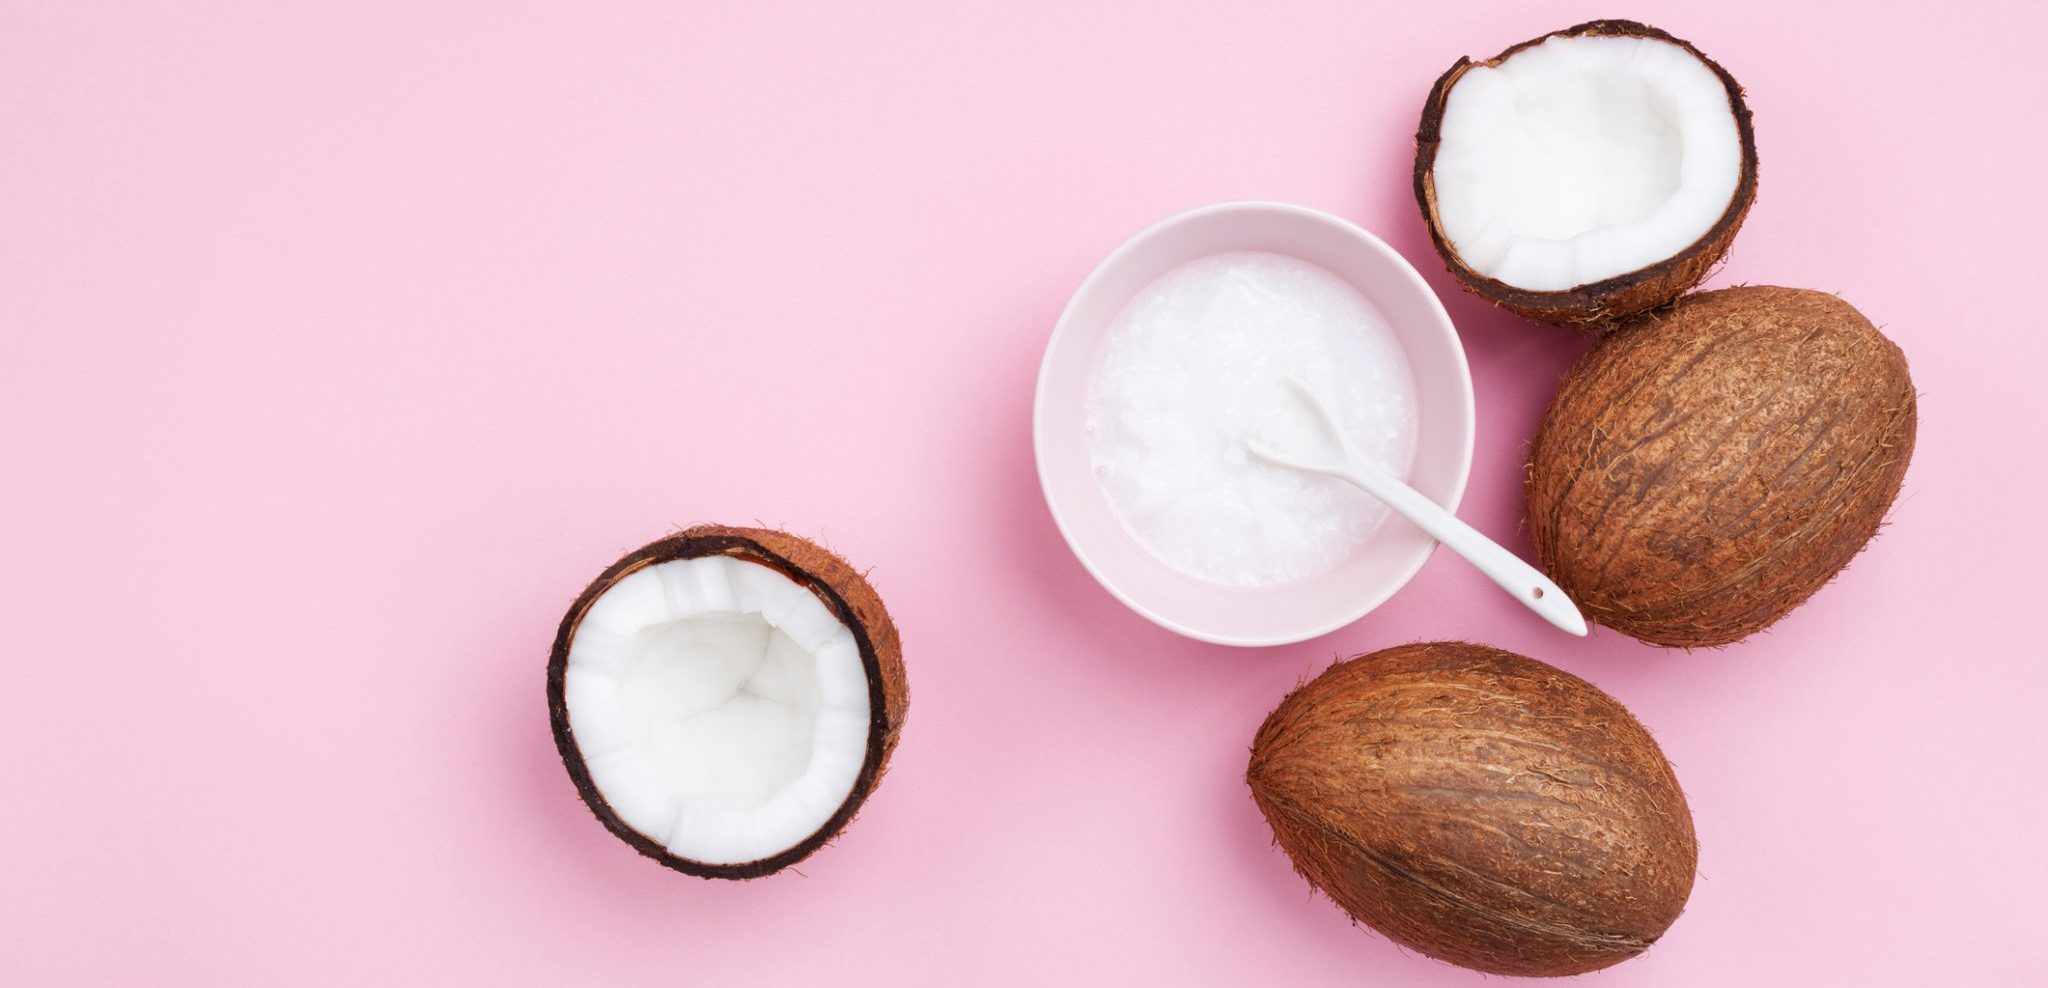 Coconut Oil Wraps Uncovered: the Next Beauty Secret?